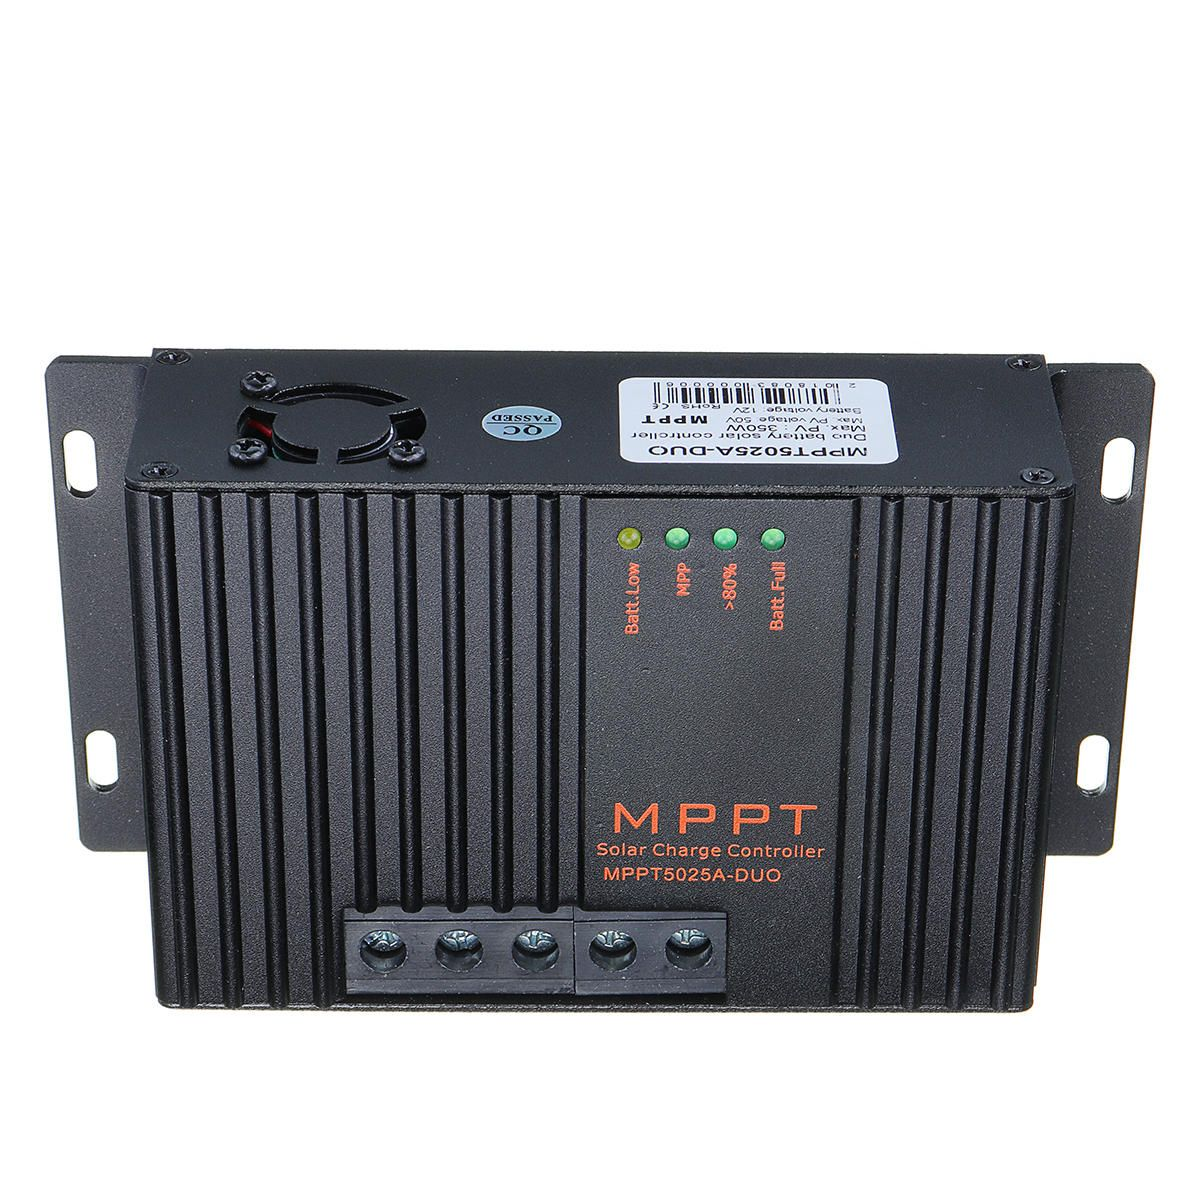 GMR US$55.65 MPPT5025A-DUO MPPT 25A 12V Solar Charge Controller With LCD Solar Regulator For Solar Panel Charger